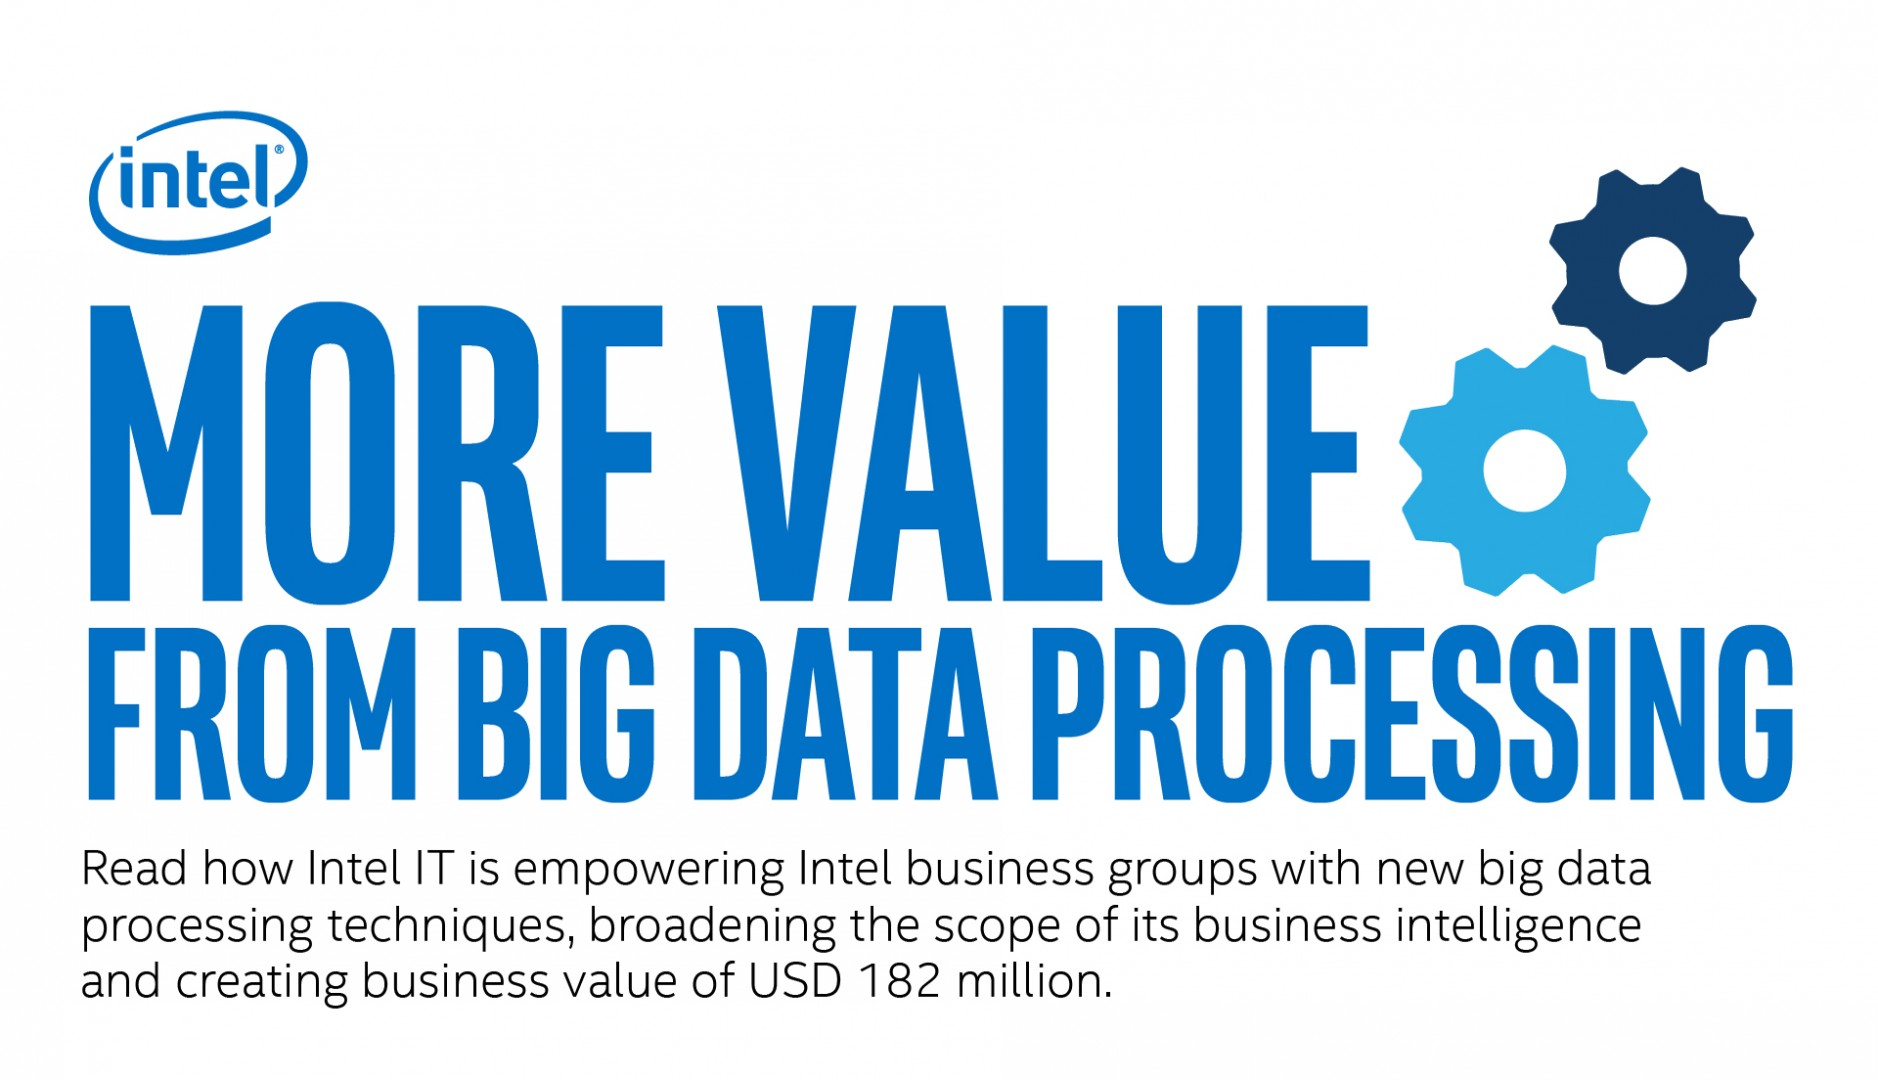 More Value From Big Data Processing